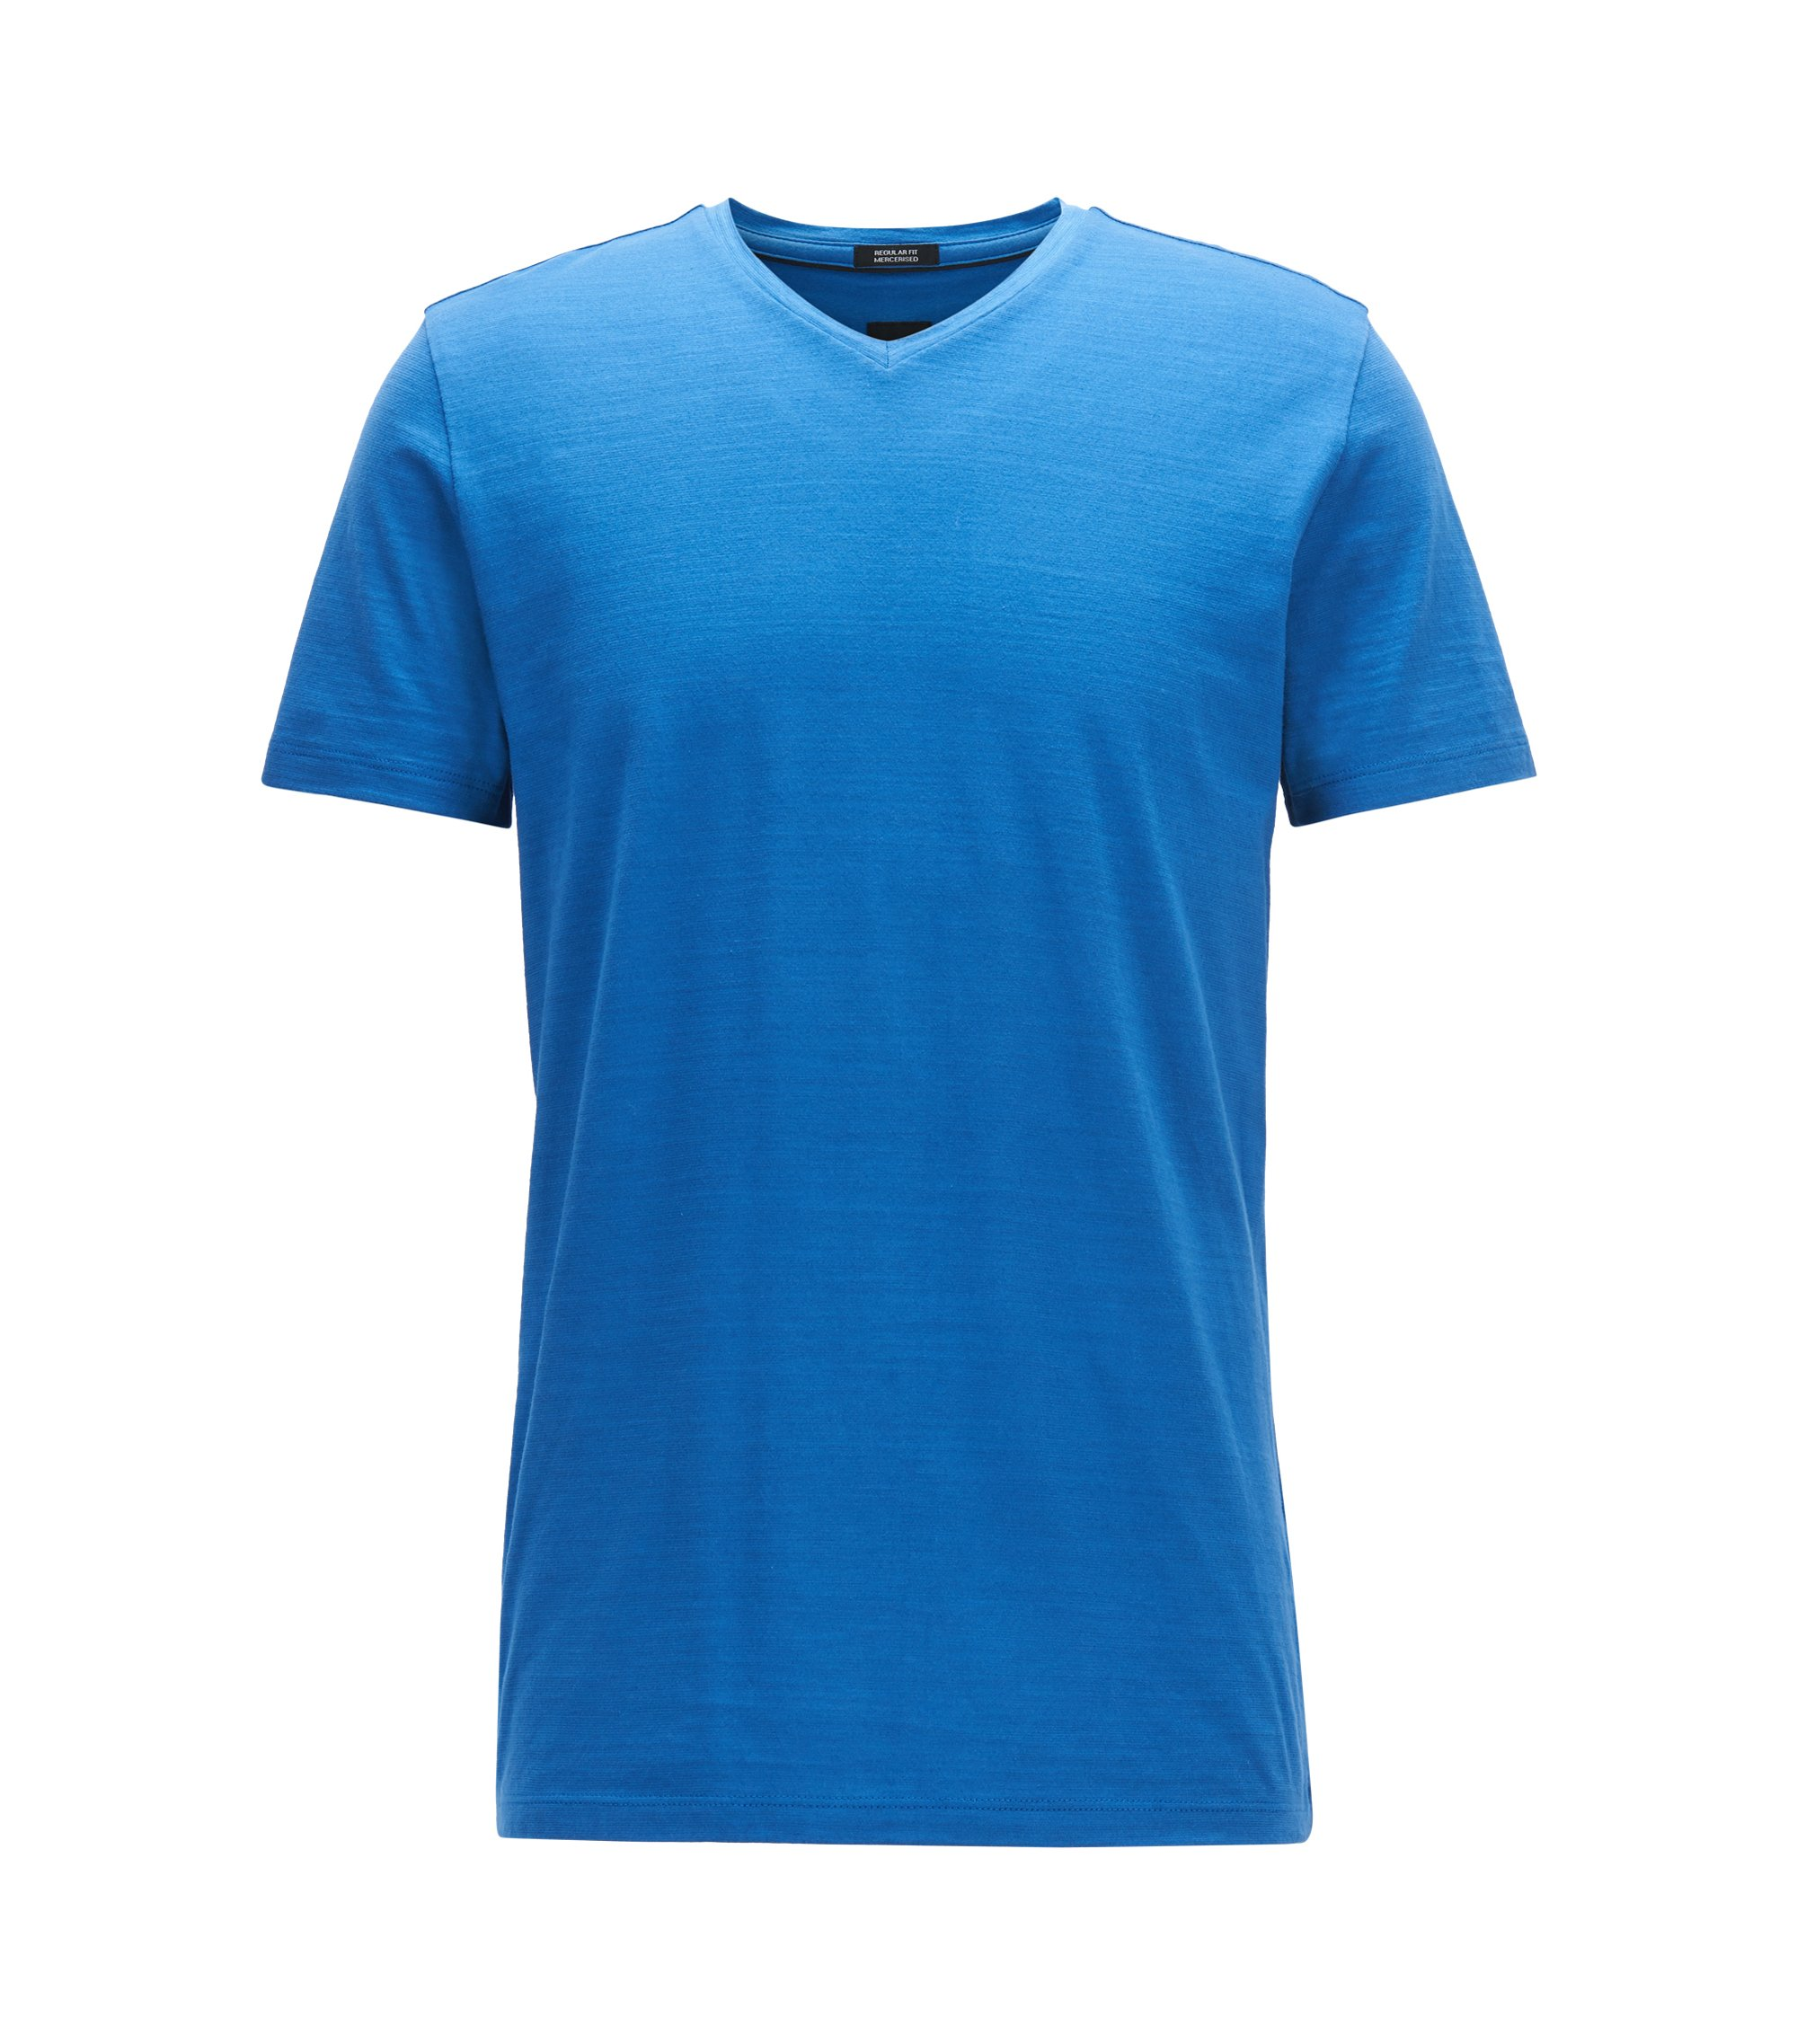 T-shirt Regular Fit en coton mercerisé, Bleu